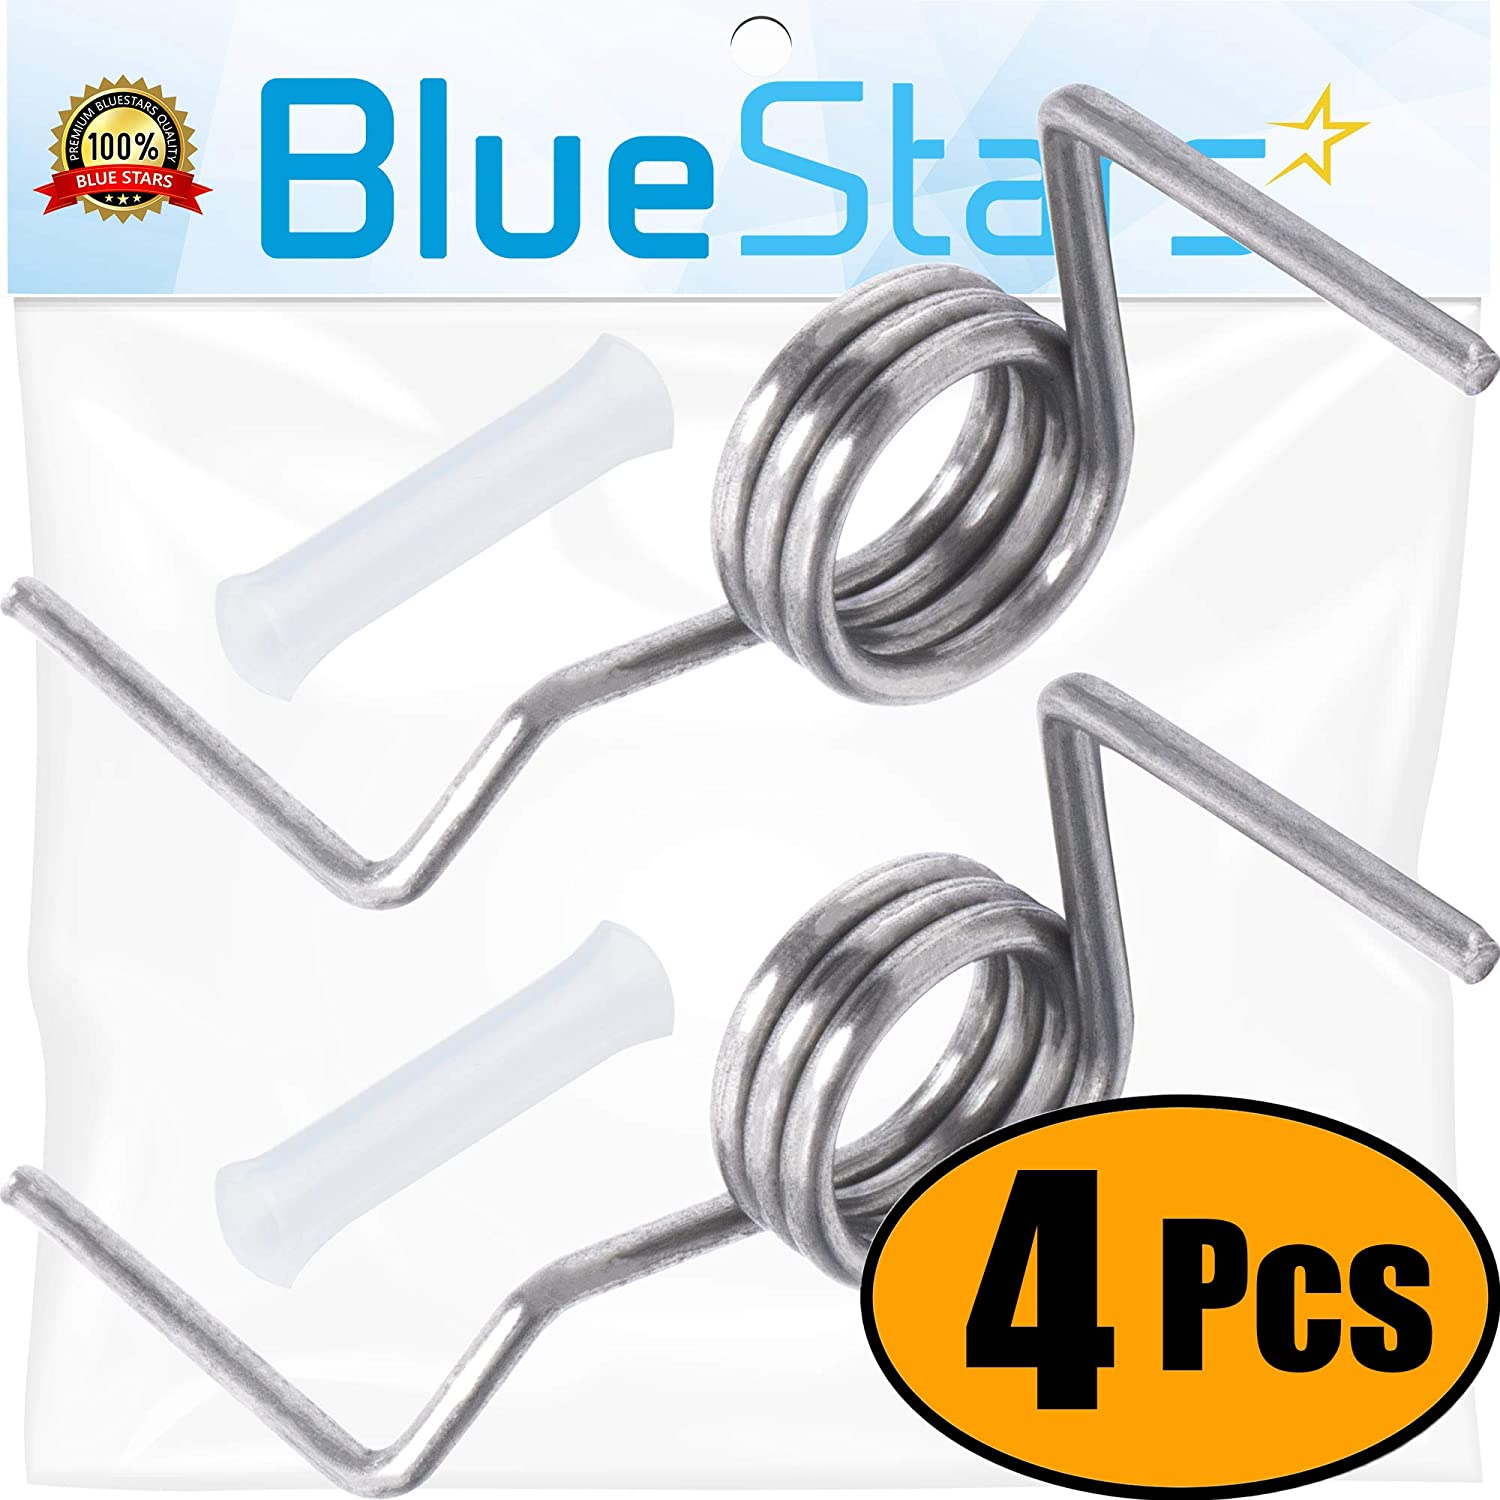 Ultra Durable DA81-01345B & DA81-01346A Refrigerator Door Spring Set Replacement by Blue Stars - Exact Fit for Samsung Refrigerators - Replaces DA61-07471A, DA81-01345A